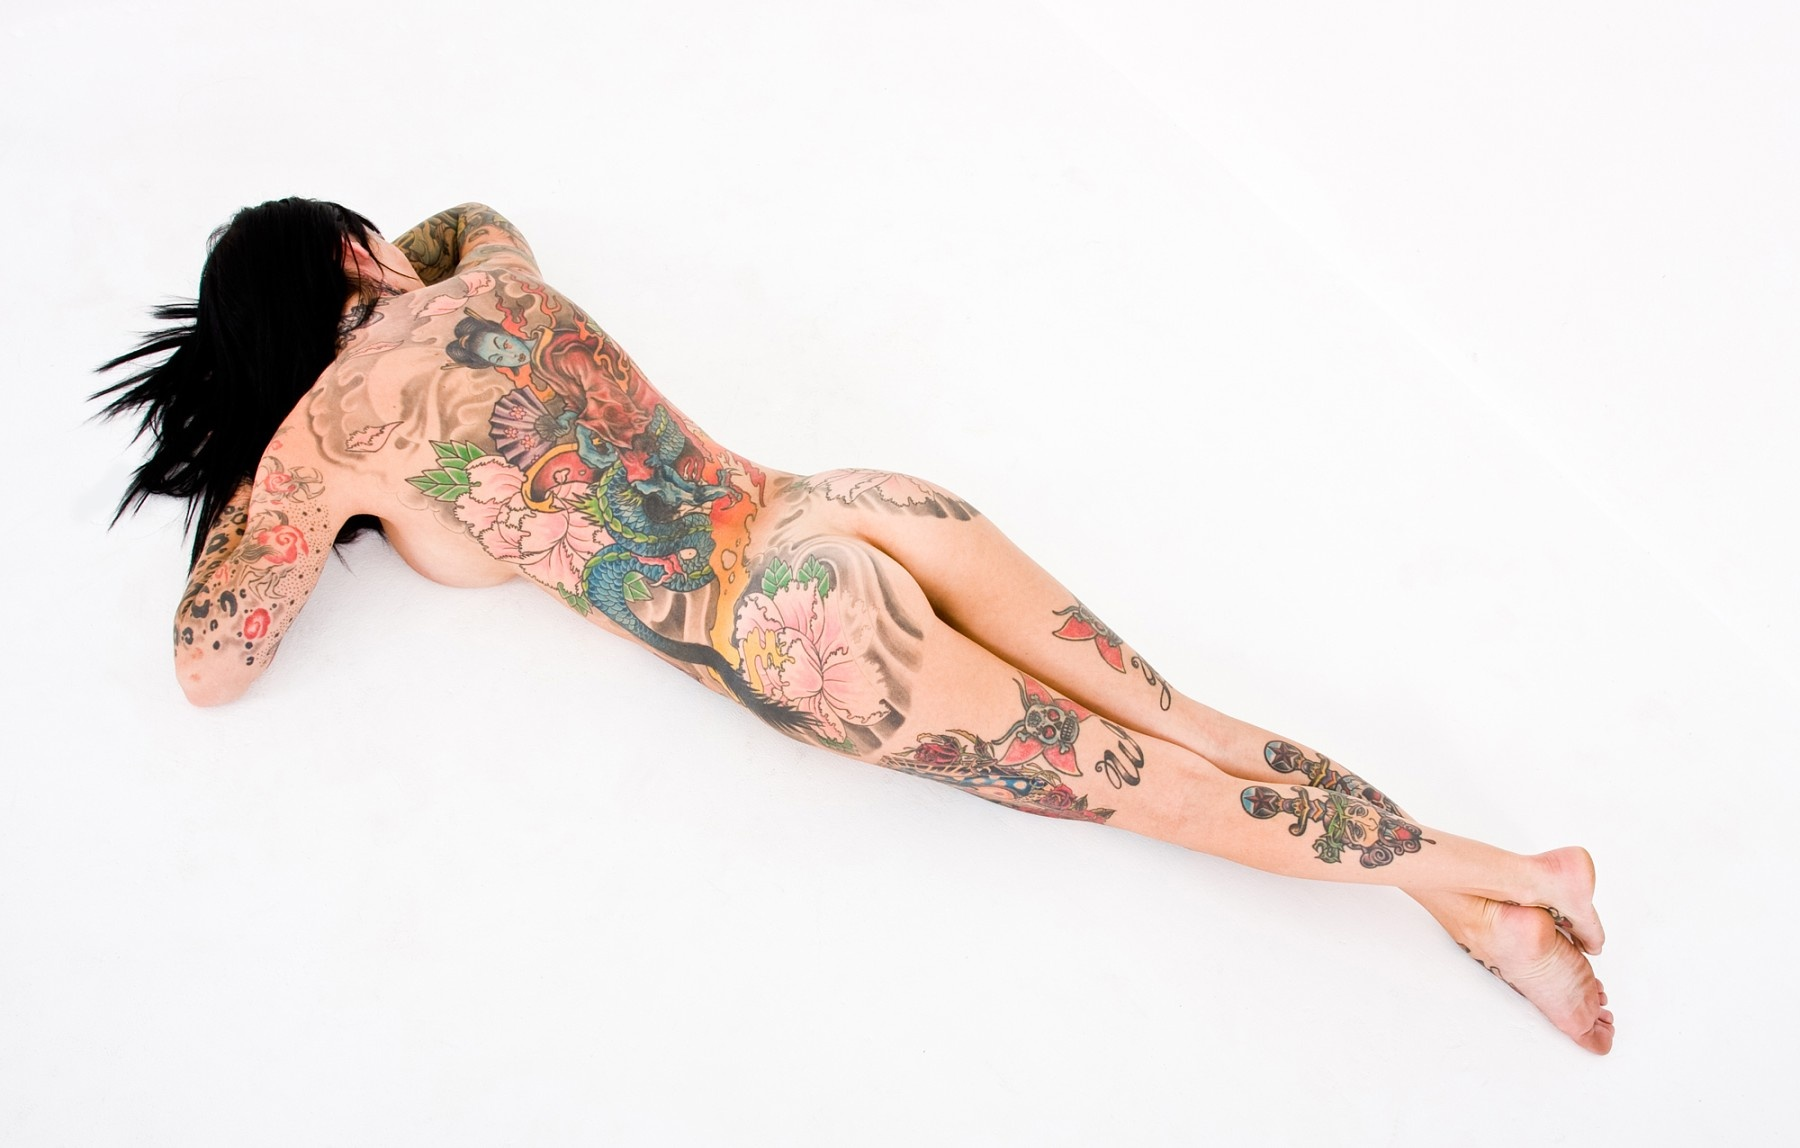 adults-naked-picture-with-tattoo-raider-sexy-naked